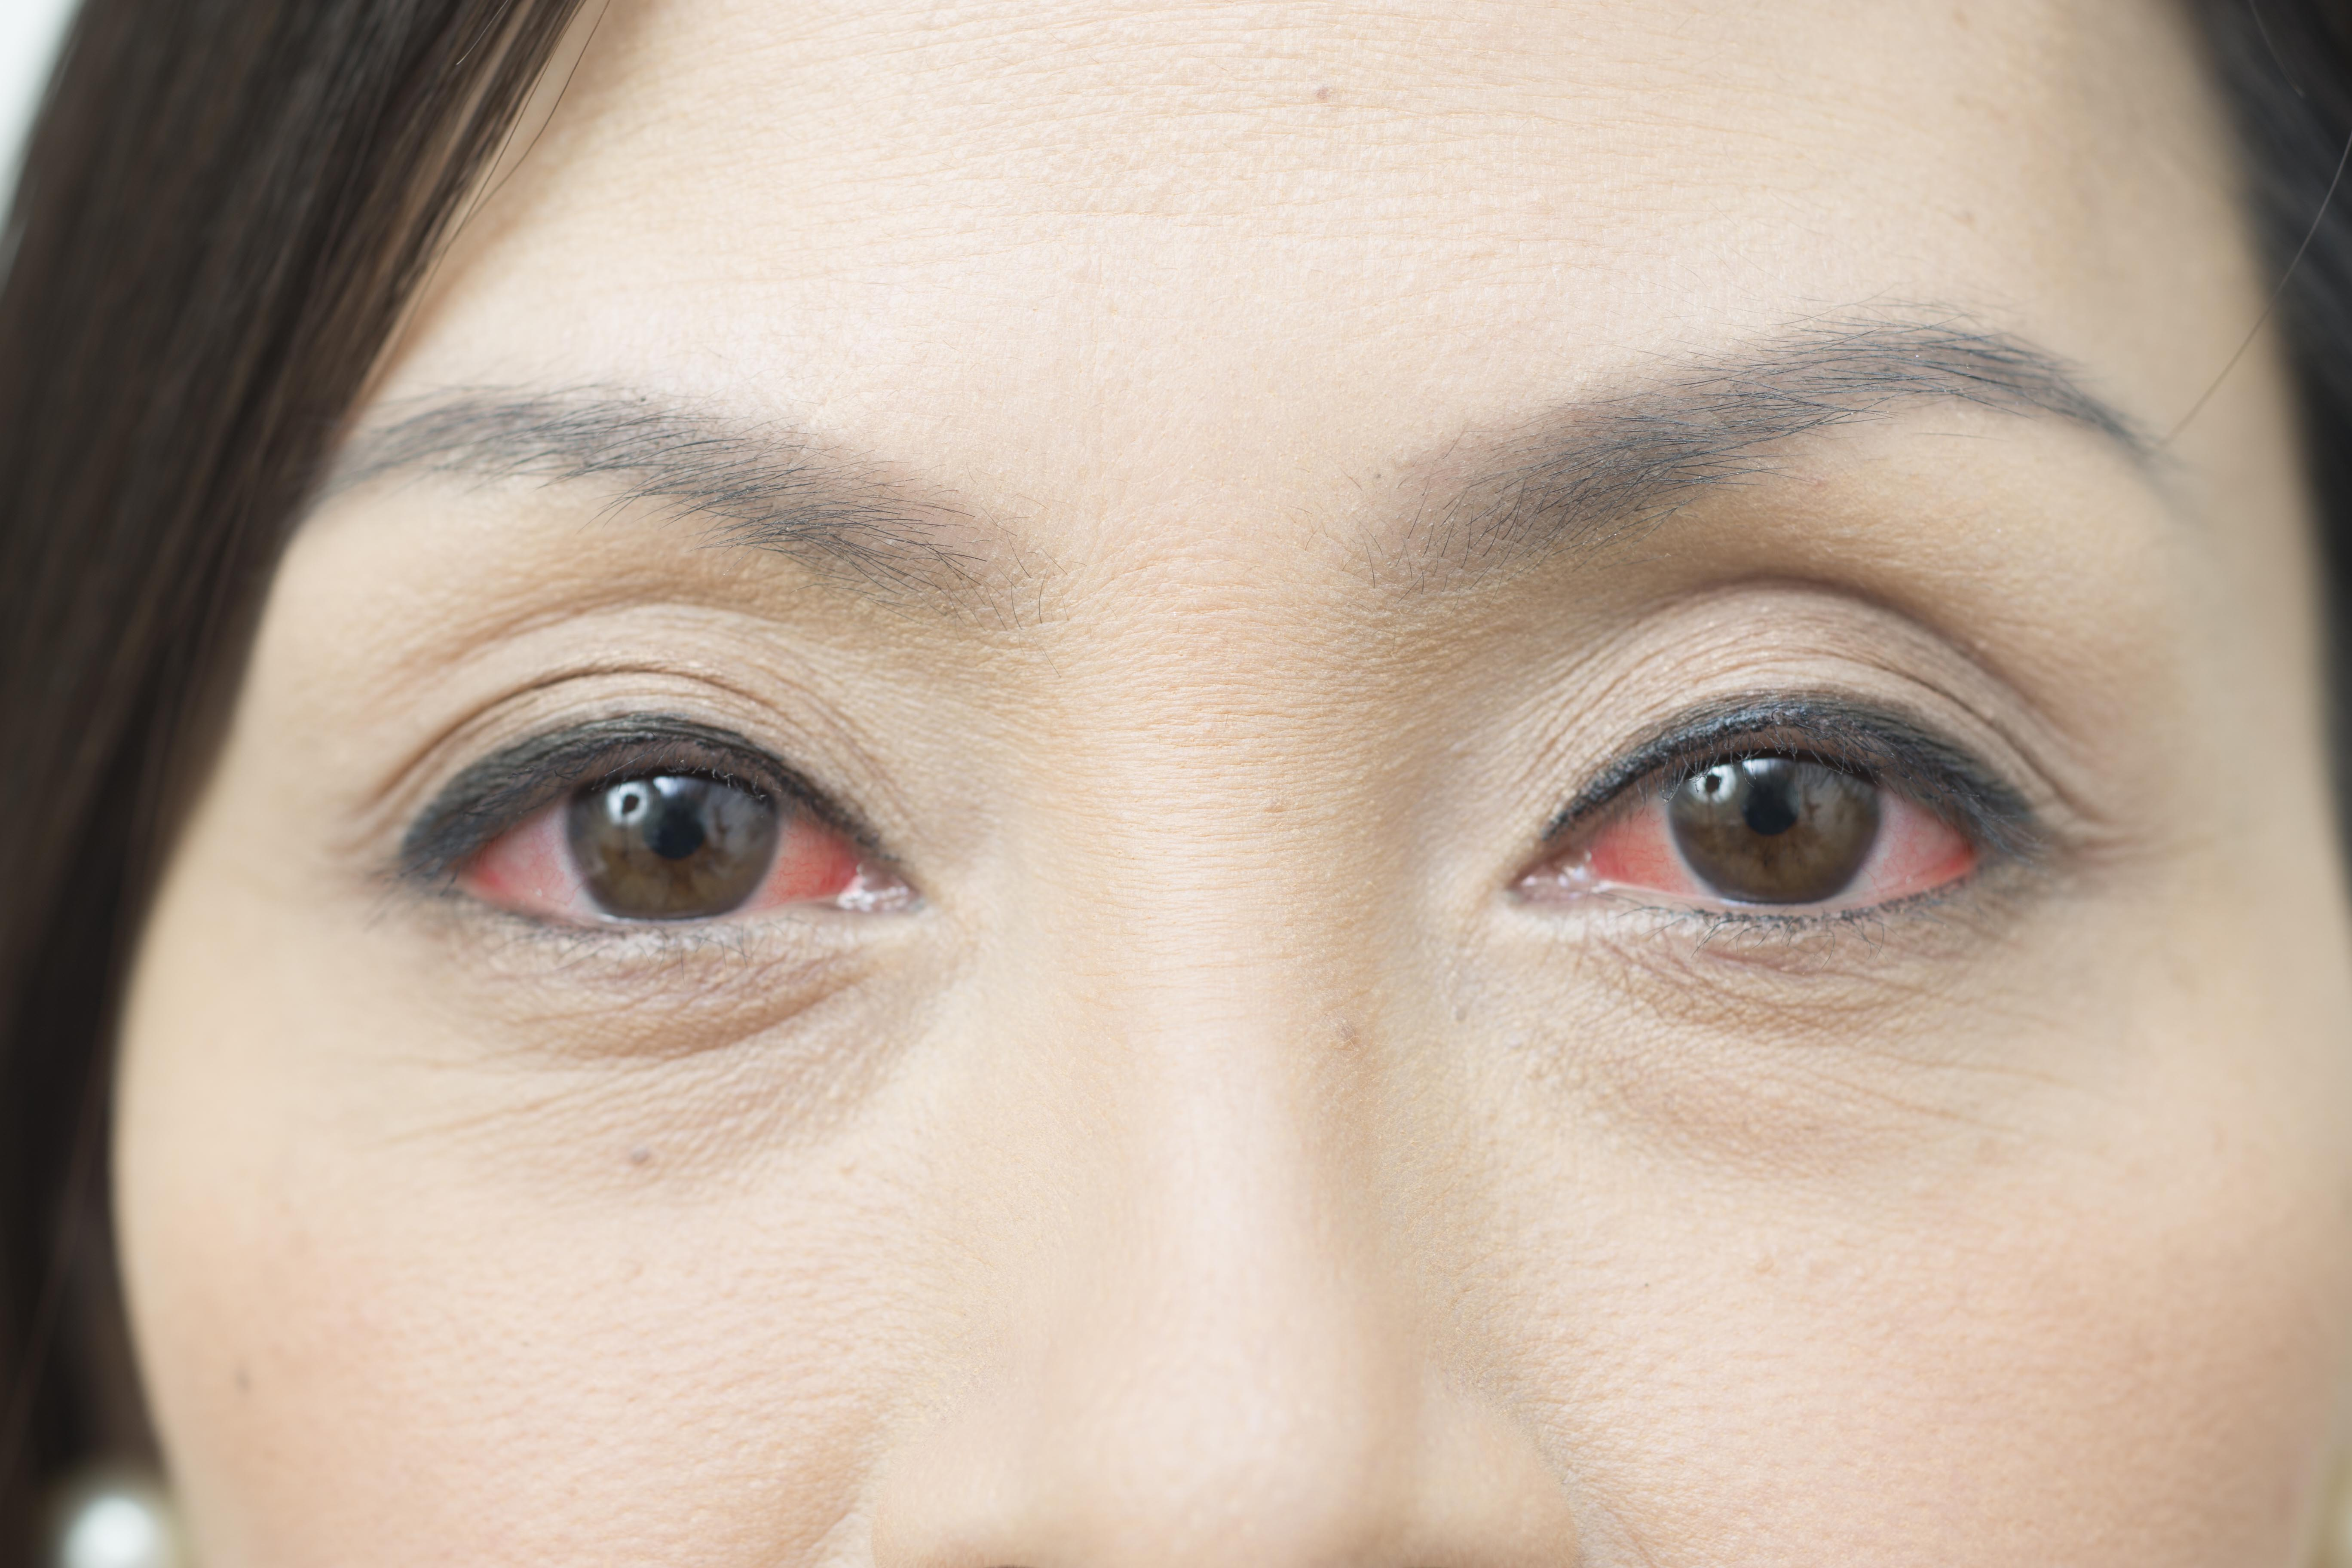 Conjunctivitis is considered a less common symptom of the coronavirus disease